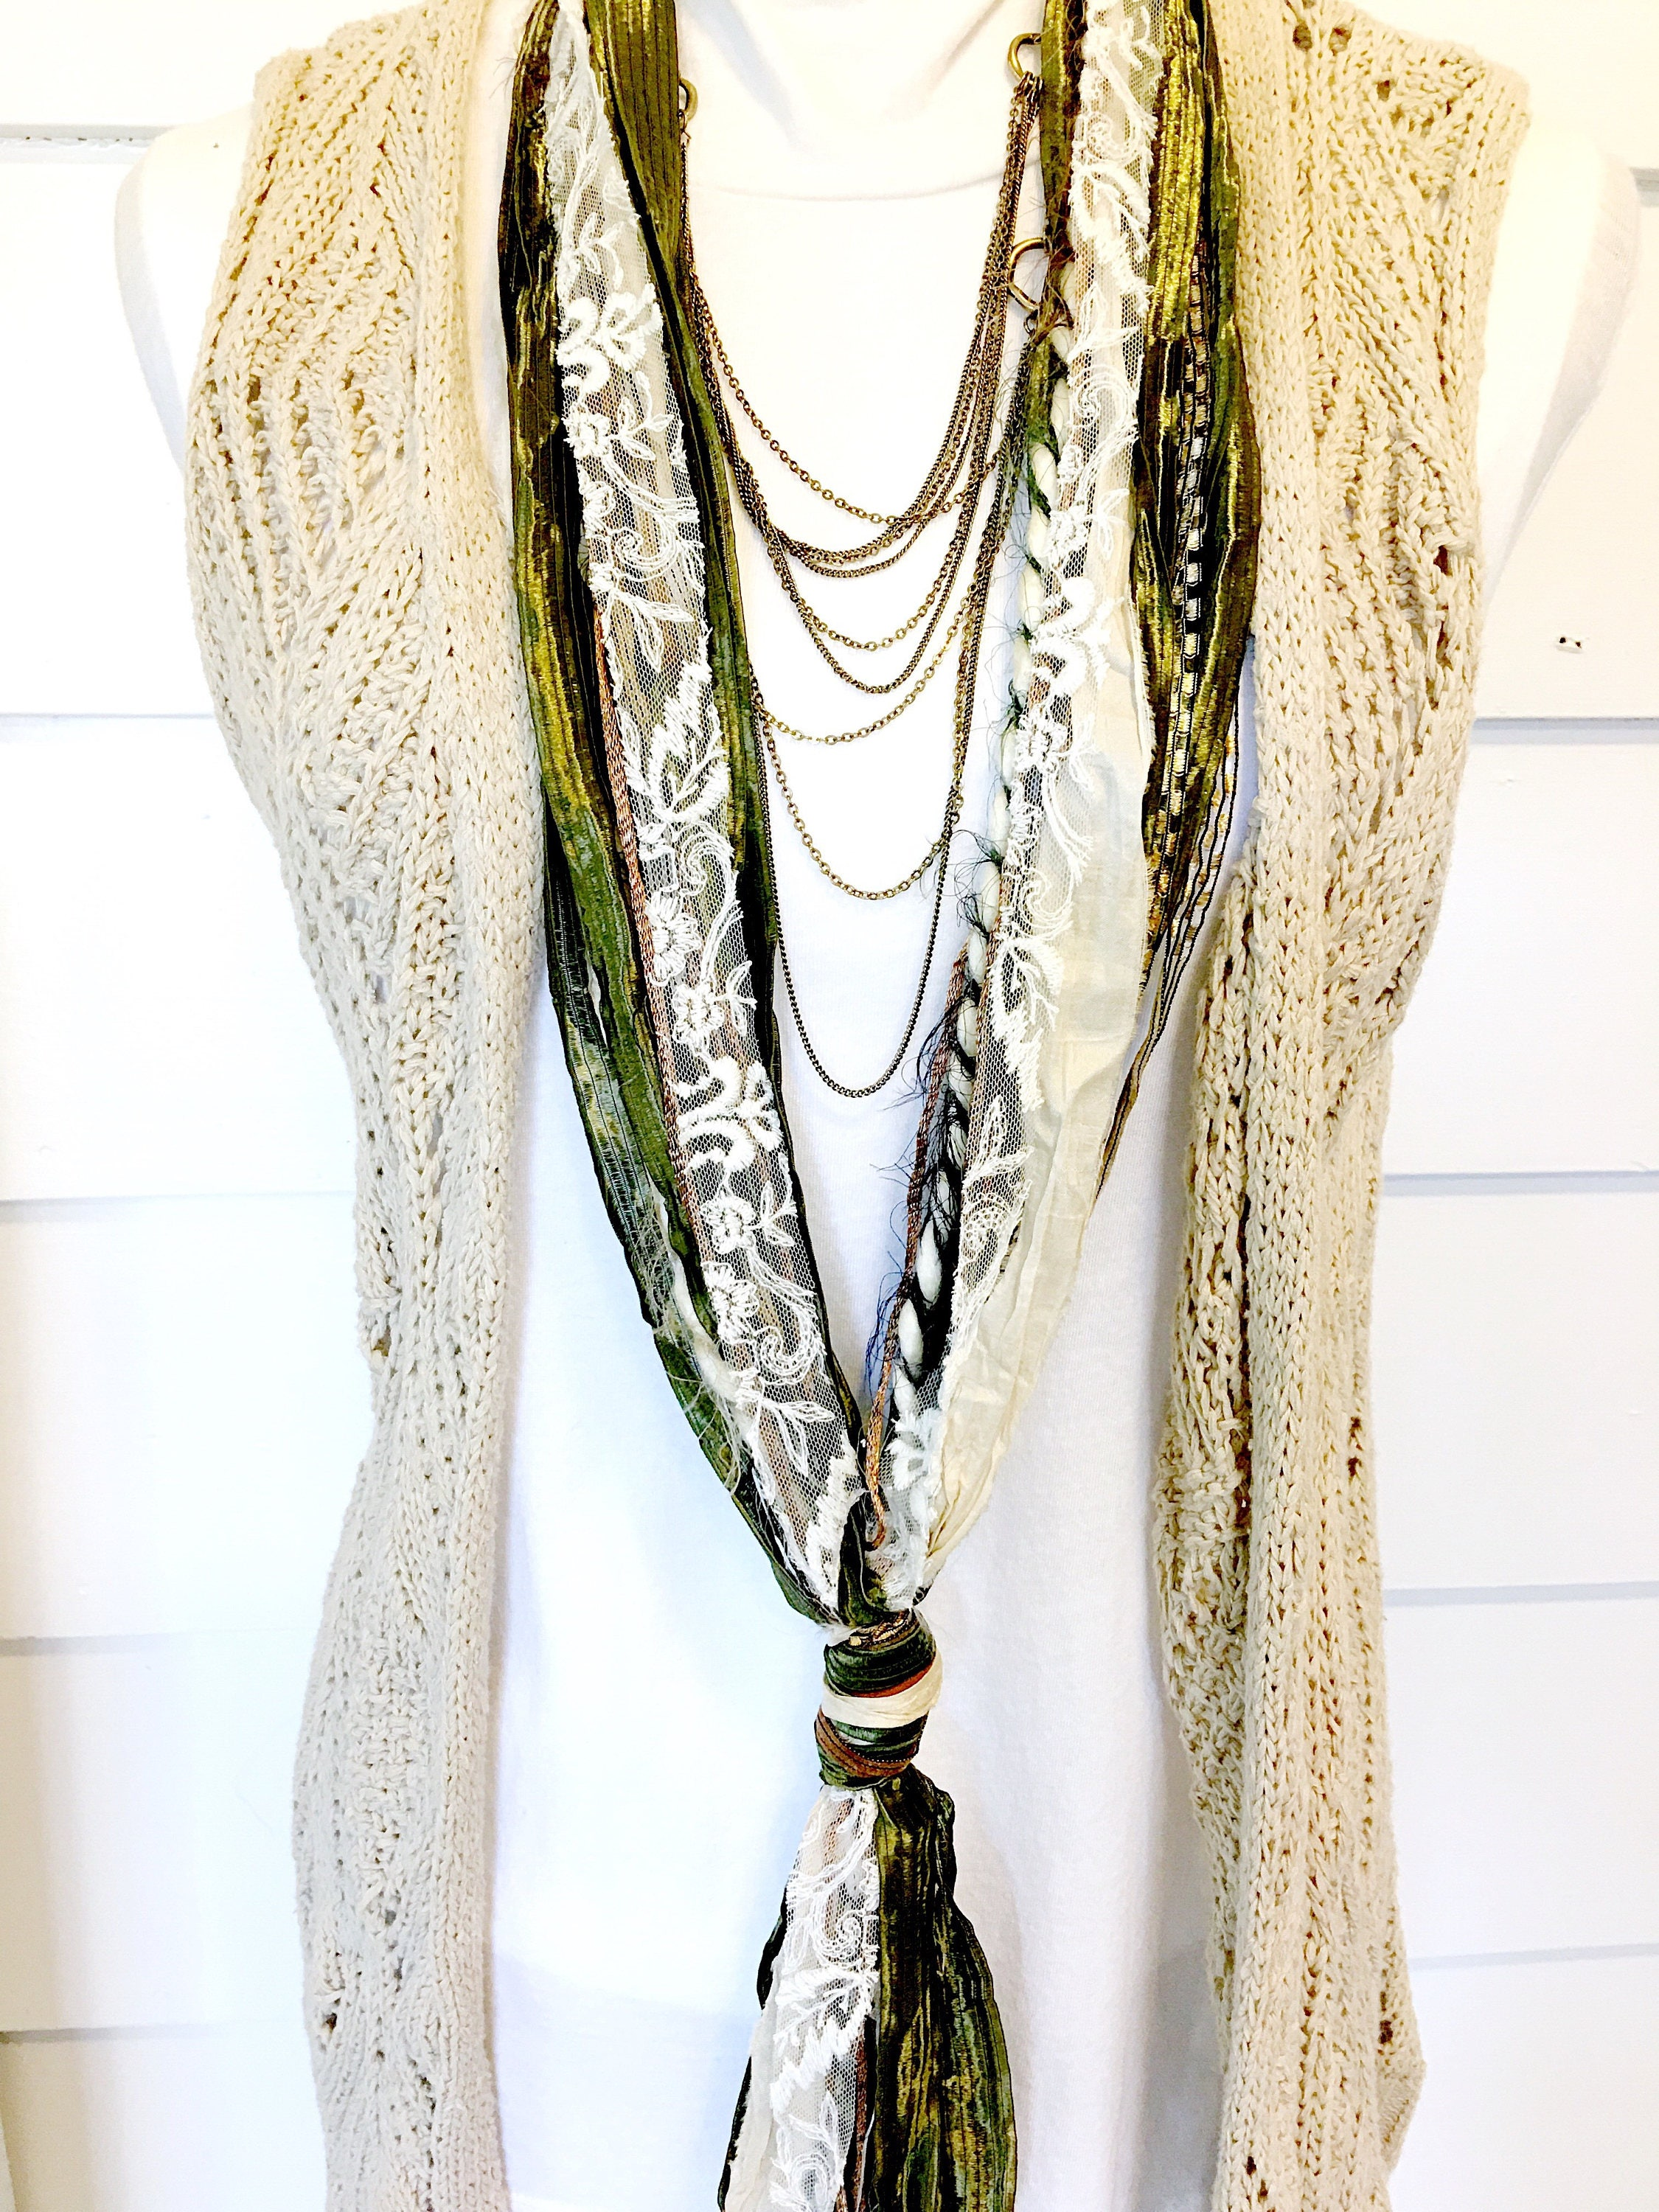 bugles multi threads bugels textile necklace fiber recycled products beyond